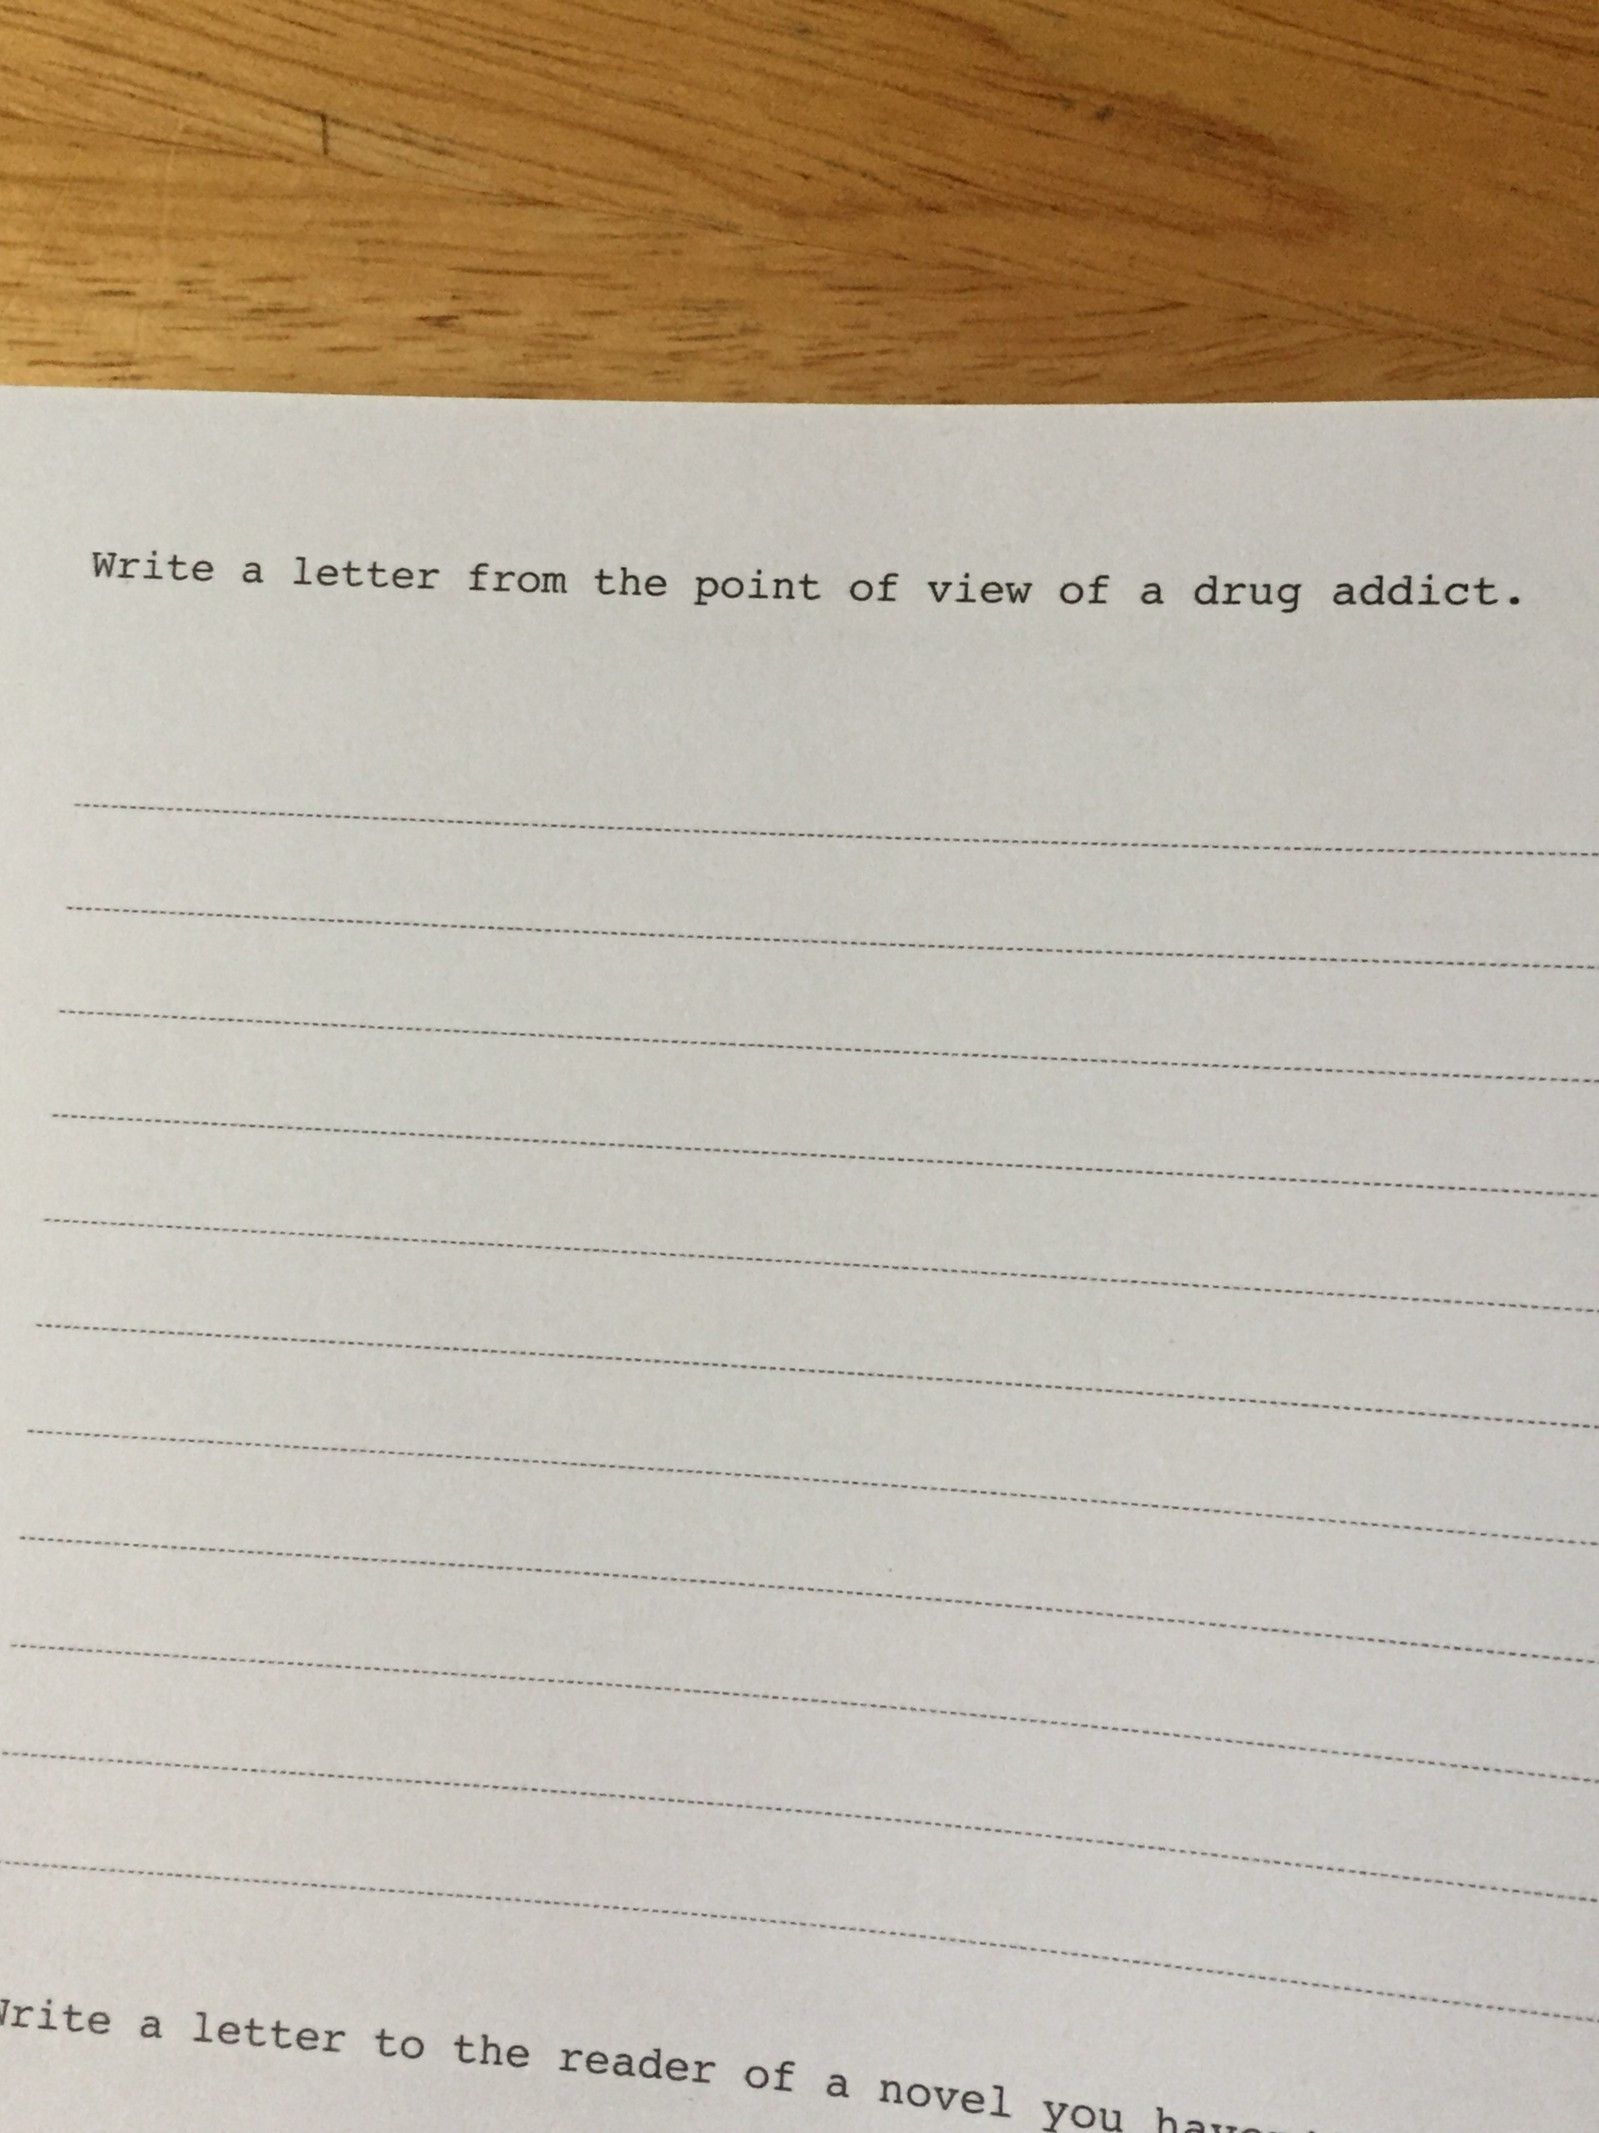 writing wednesday 015 write a letter from the point of view of a drug addict